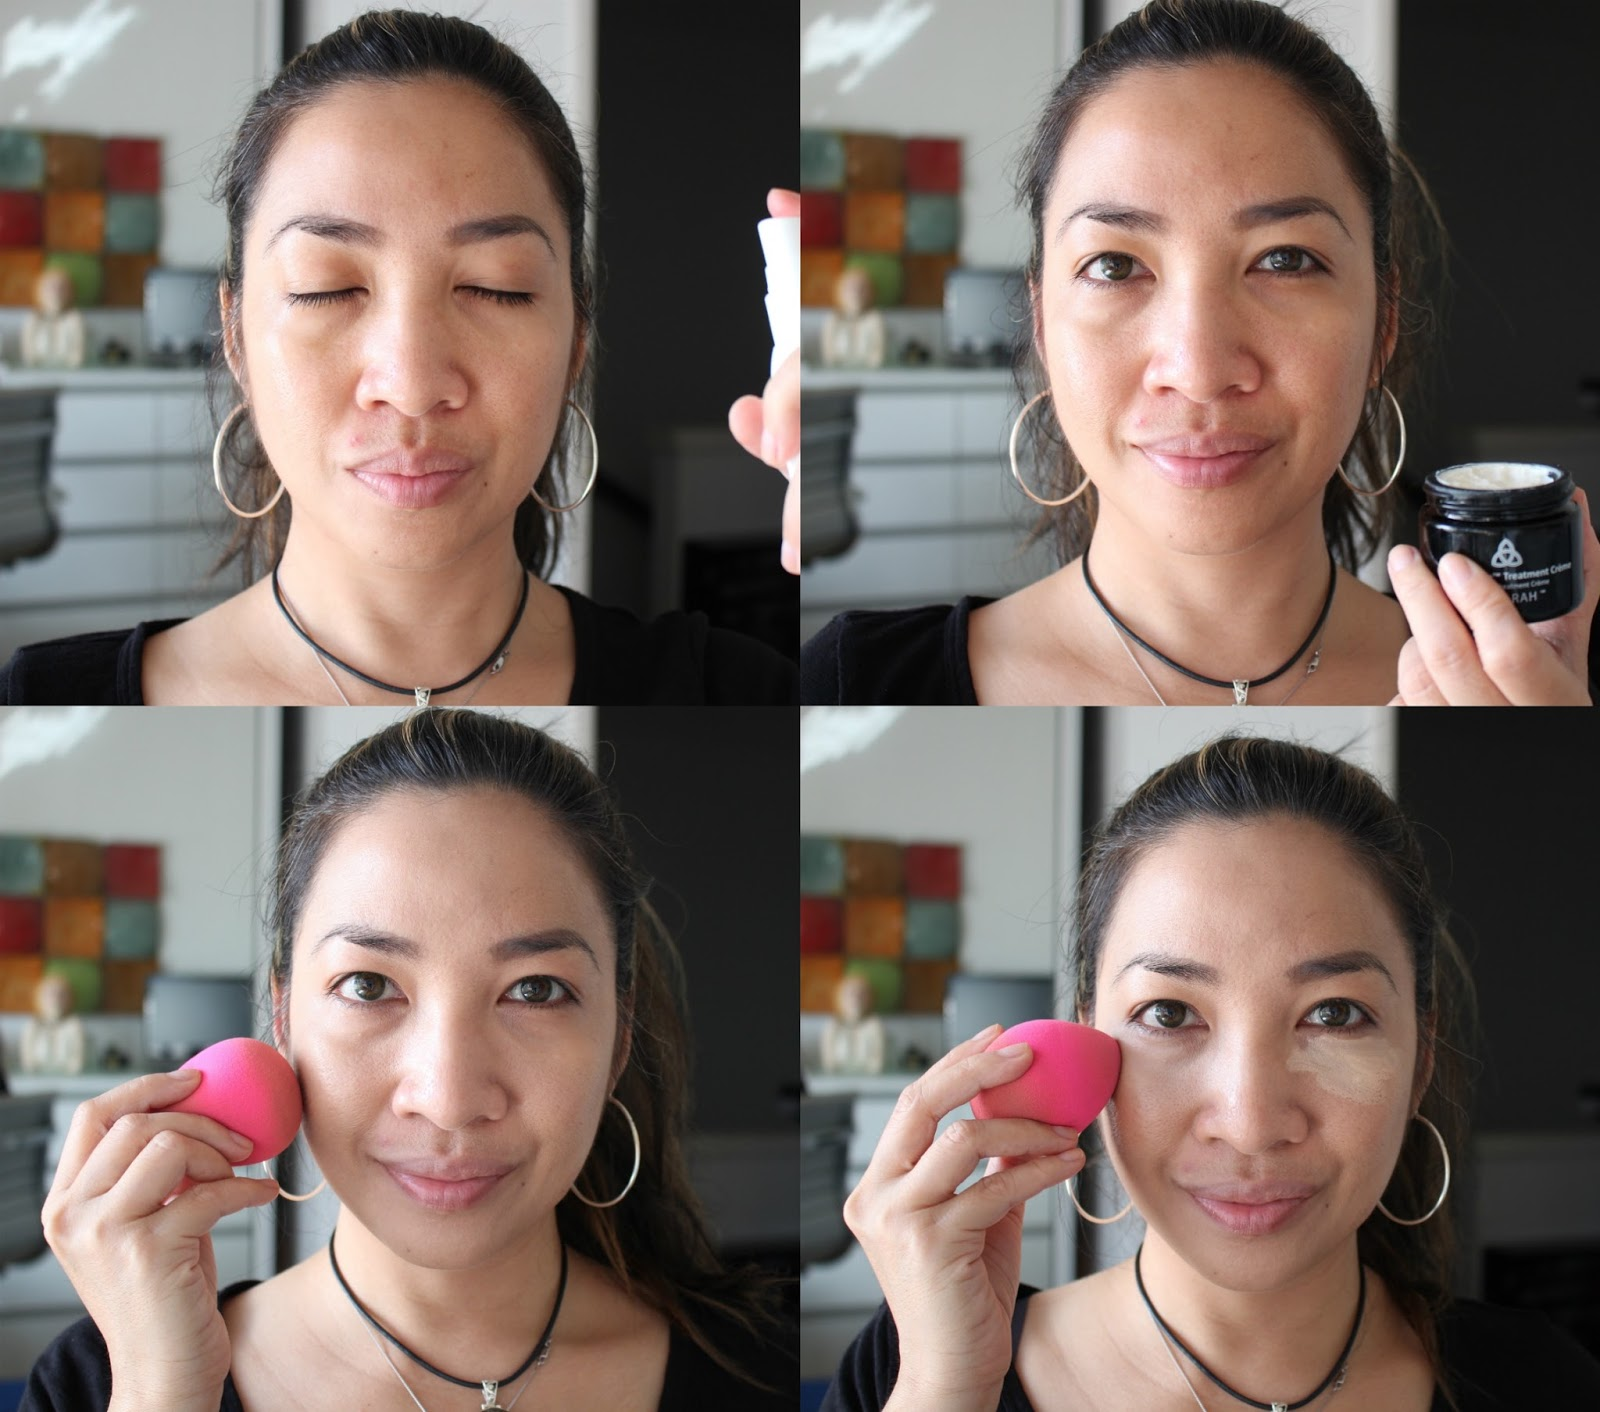 summer-proof makeup, summer makeup tips, summer makeup tutorial